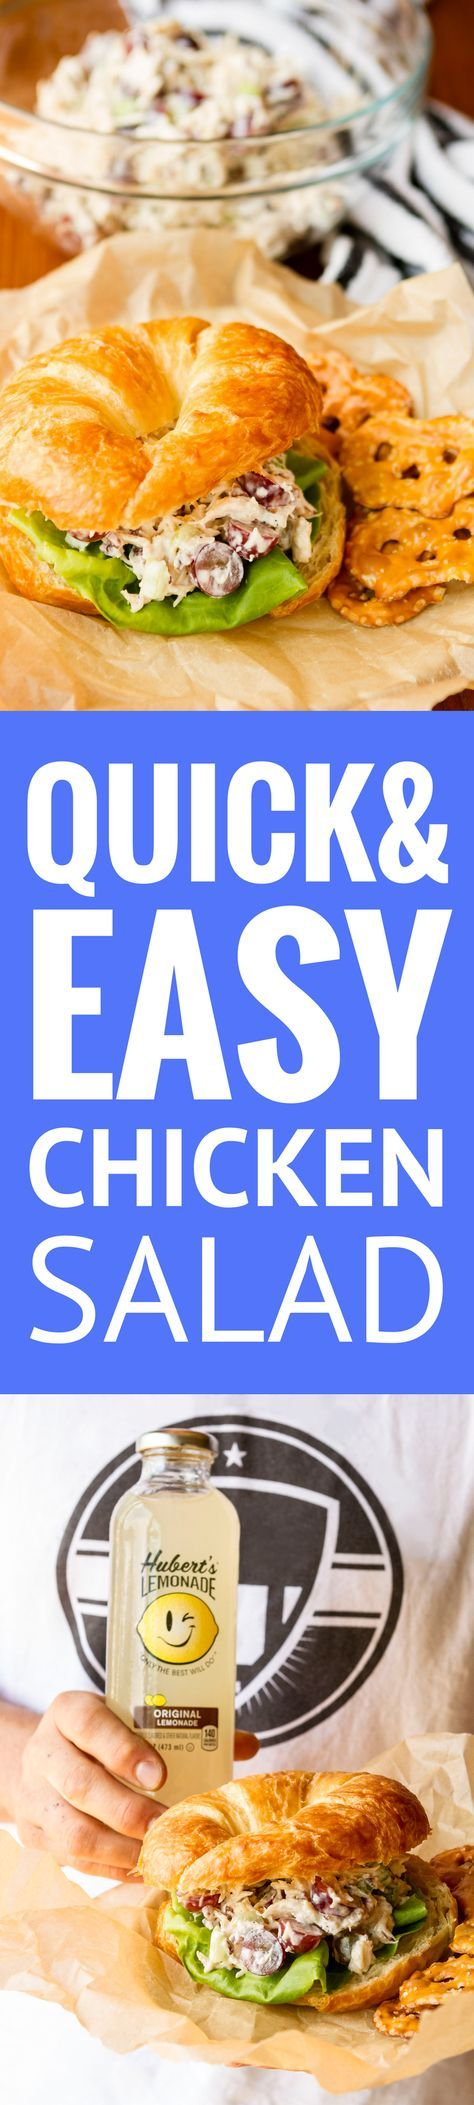 Easy Chicken Salad -- this easy chicken salad recipe, filled with fresh grapes and roasted pecans, makes a quick, delicious, and satisfying meal! I like it heavy on the grapes for a satisfying burst of sweet and juicy flavor in every bite... | chicken salad with grapes | healthy chicken salad | chicken salad sandwich | classic chicken salad | chicken salad with Greek yogurt | find the recipe on unsophisticook.com